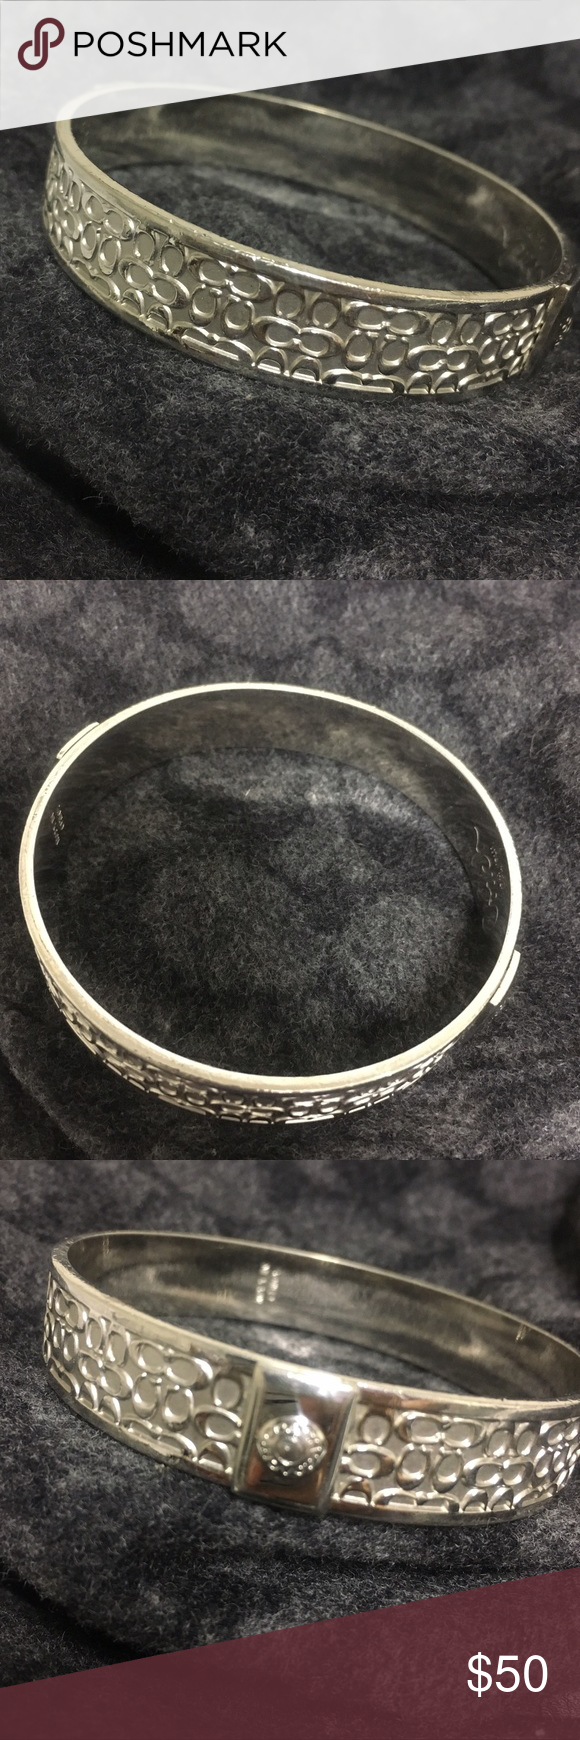 Silver Coach Bracelet Bangle With Signature C Design Some Minor Signs